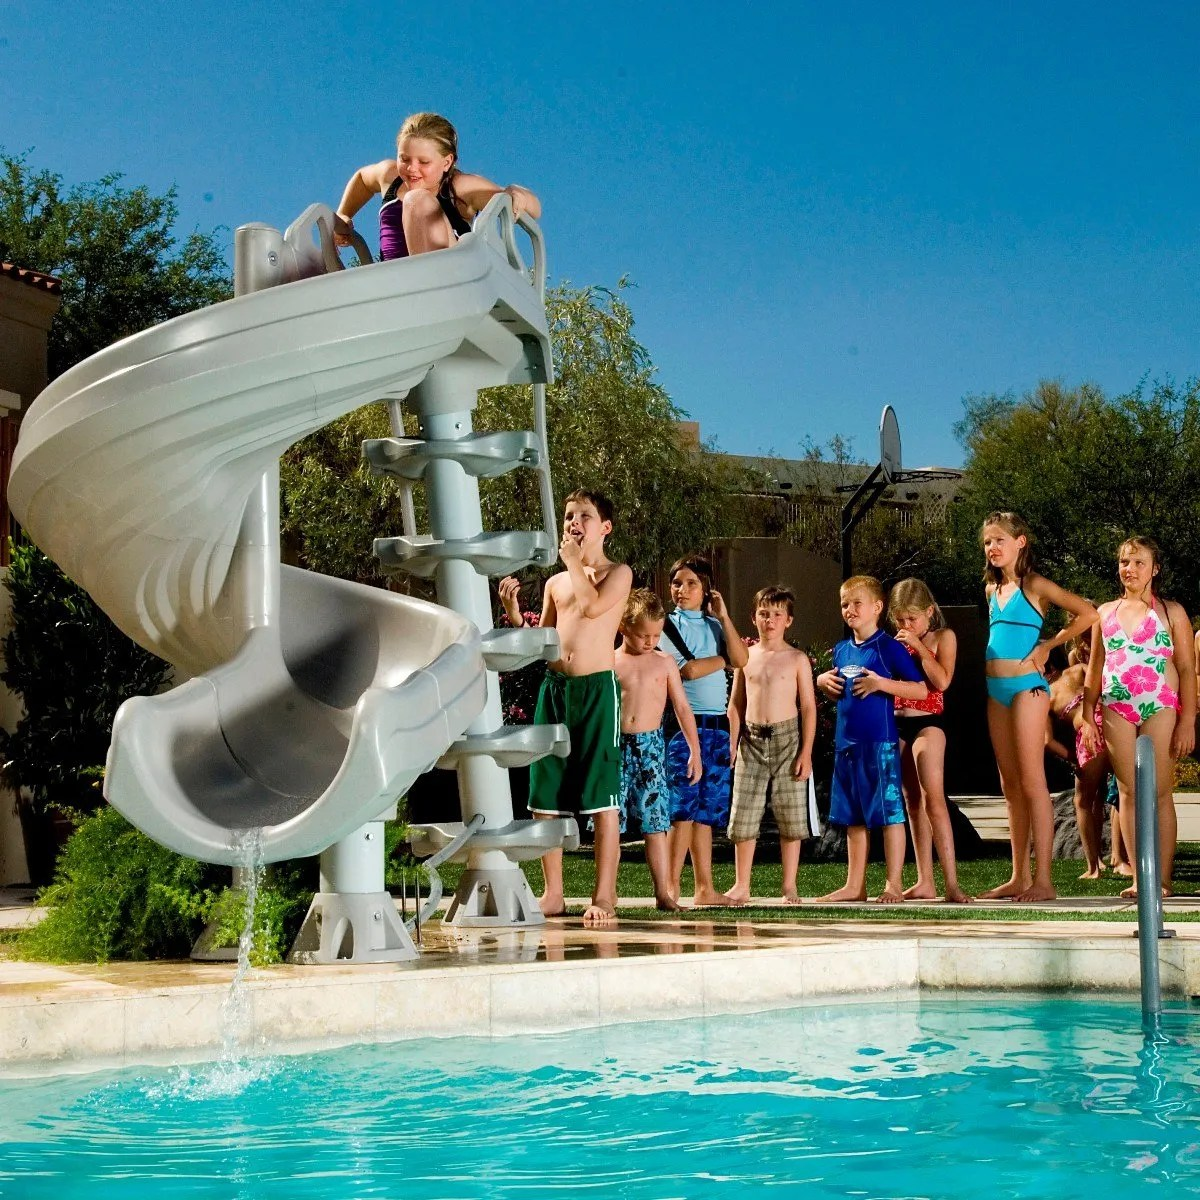 Adorable Vancouver Company Vancouver Inground Safety Information Design Ideas Swimming Slides Essex Swimming Slides Diving Boards houzz-03 Swimming Pool Slides